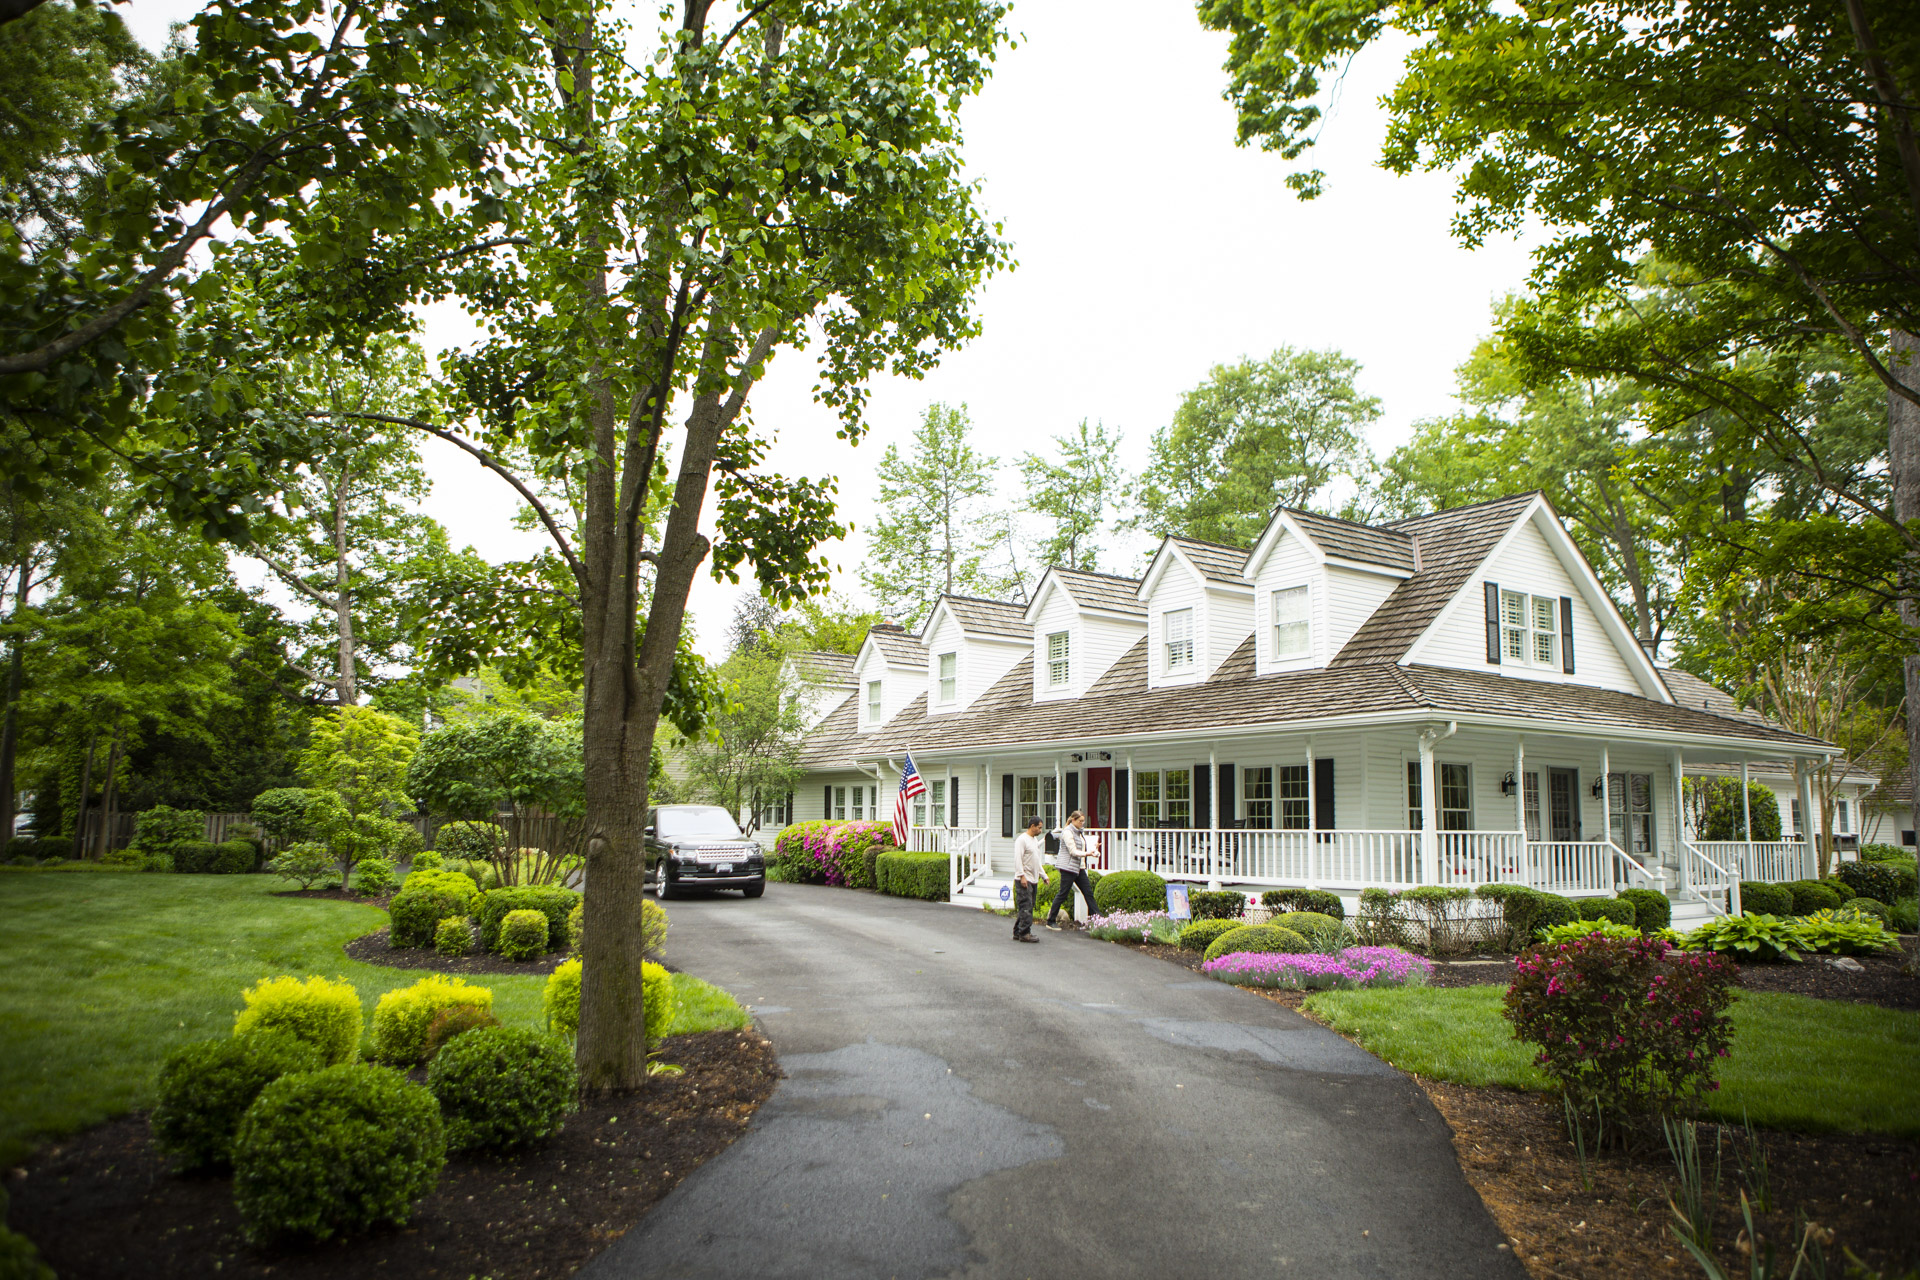 Landscape Professionals consulting for summer plantings with Kingstowne customer